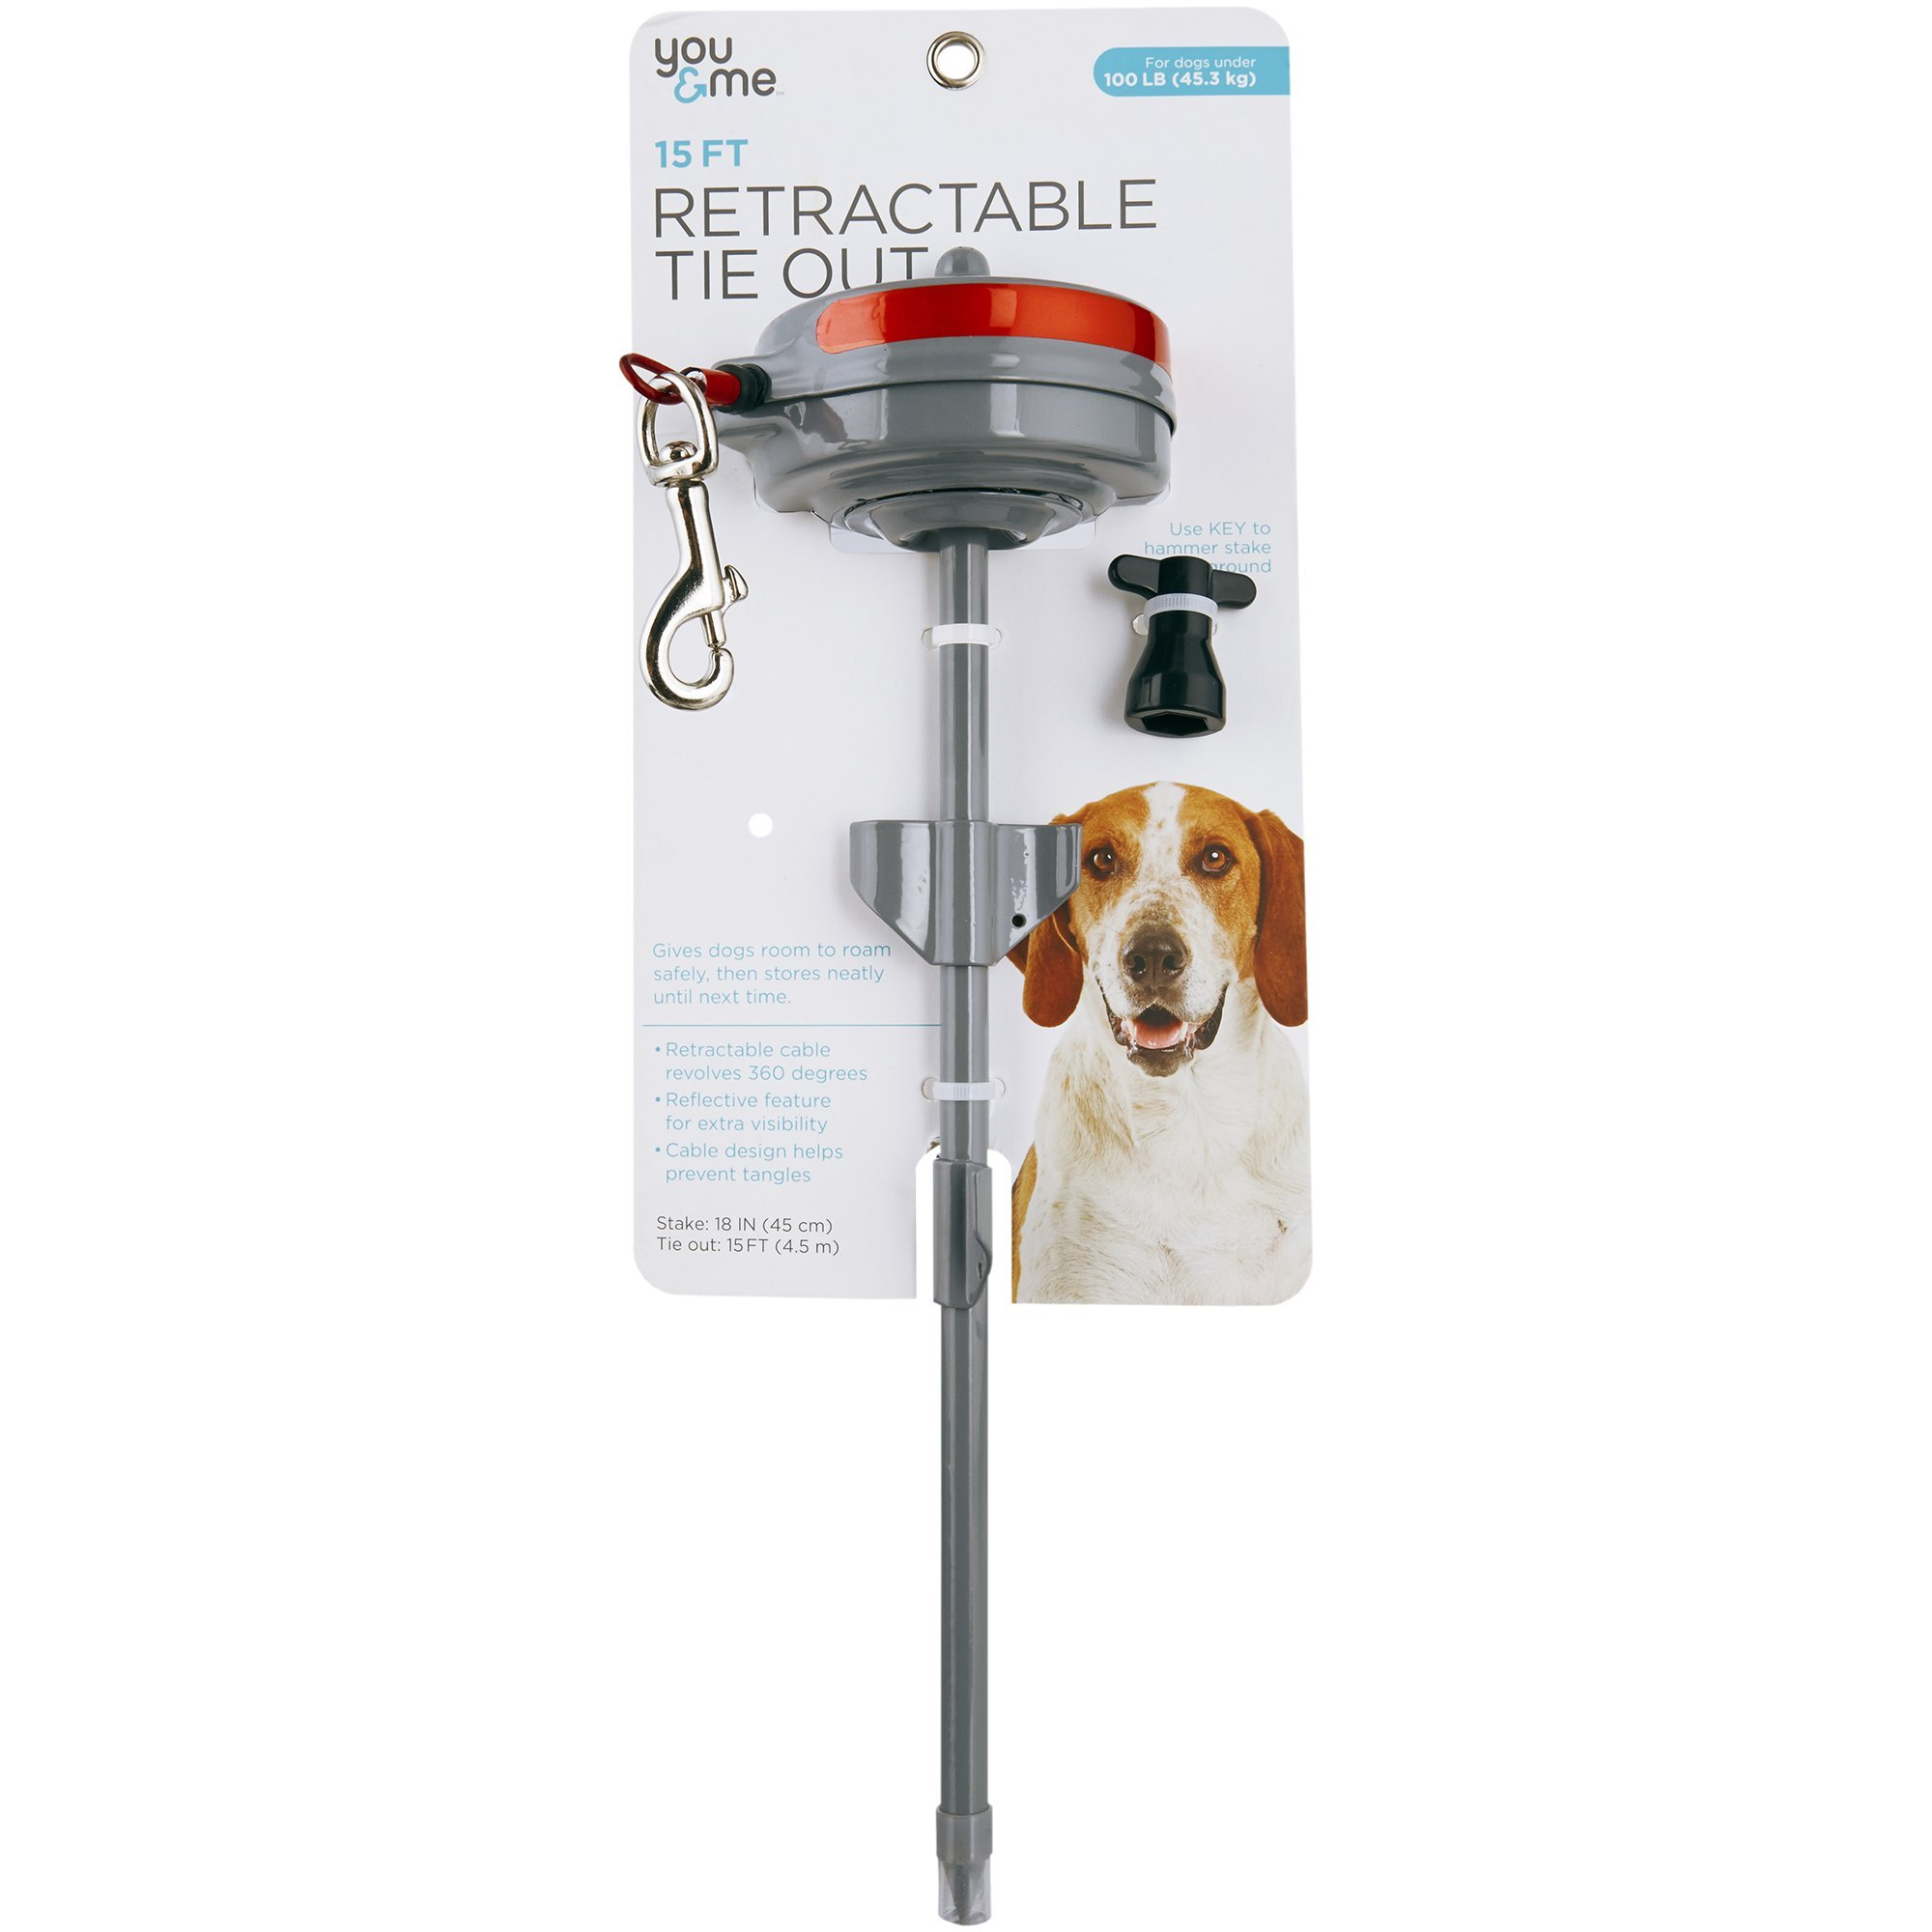 You & Me Heavy Retractable Tie Out, 15' L, for Dogs up to 100 LBS, 15 FT by You&Me